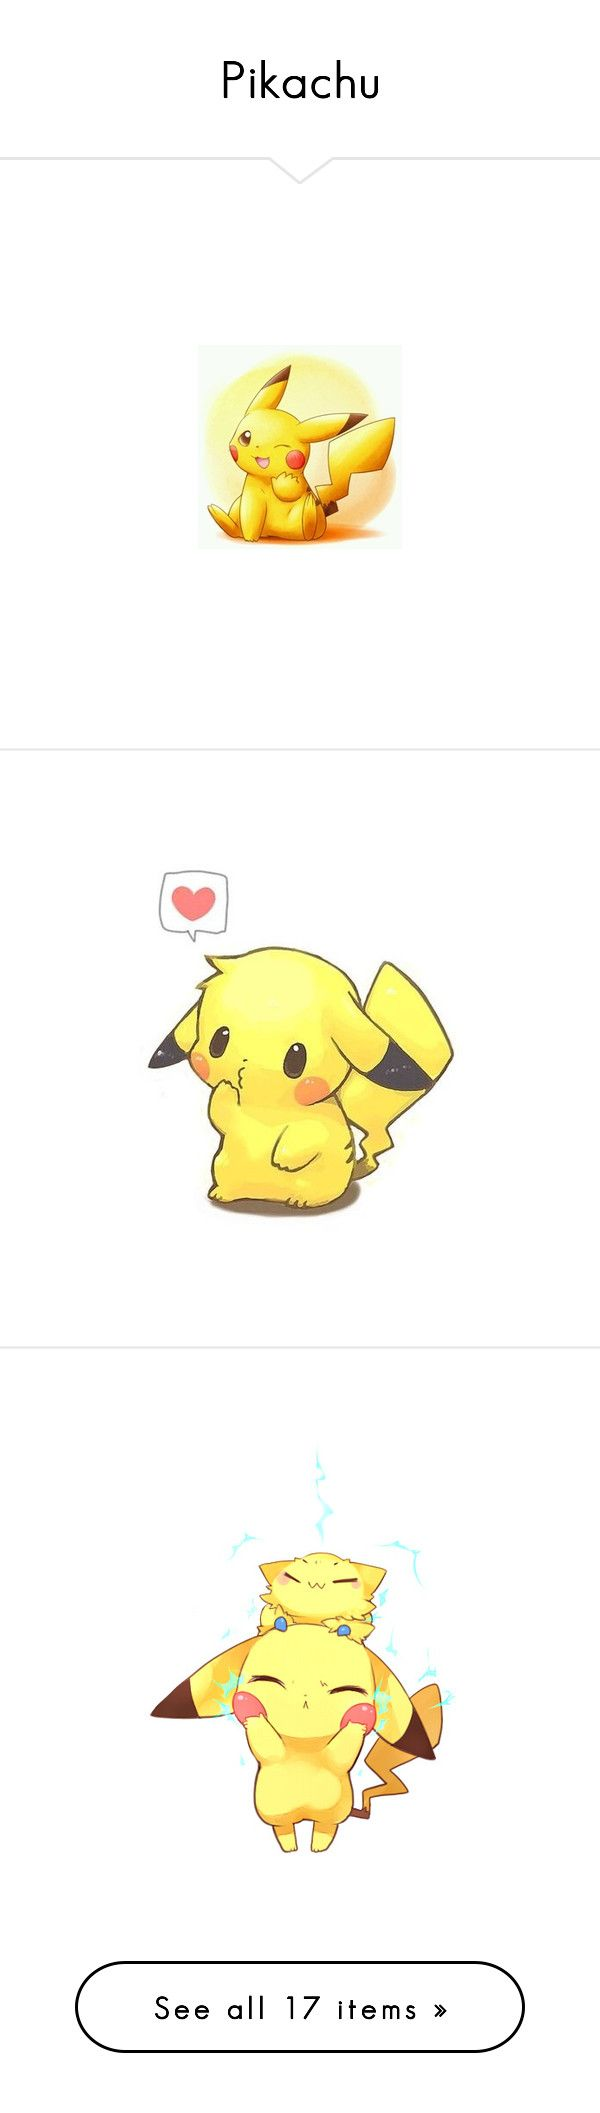 Pikachu love quotes